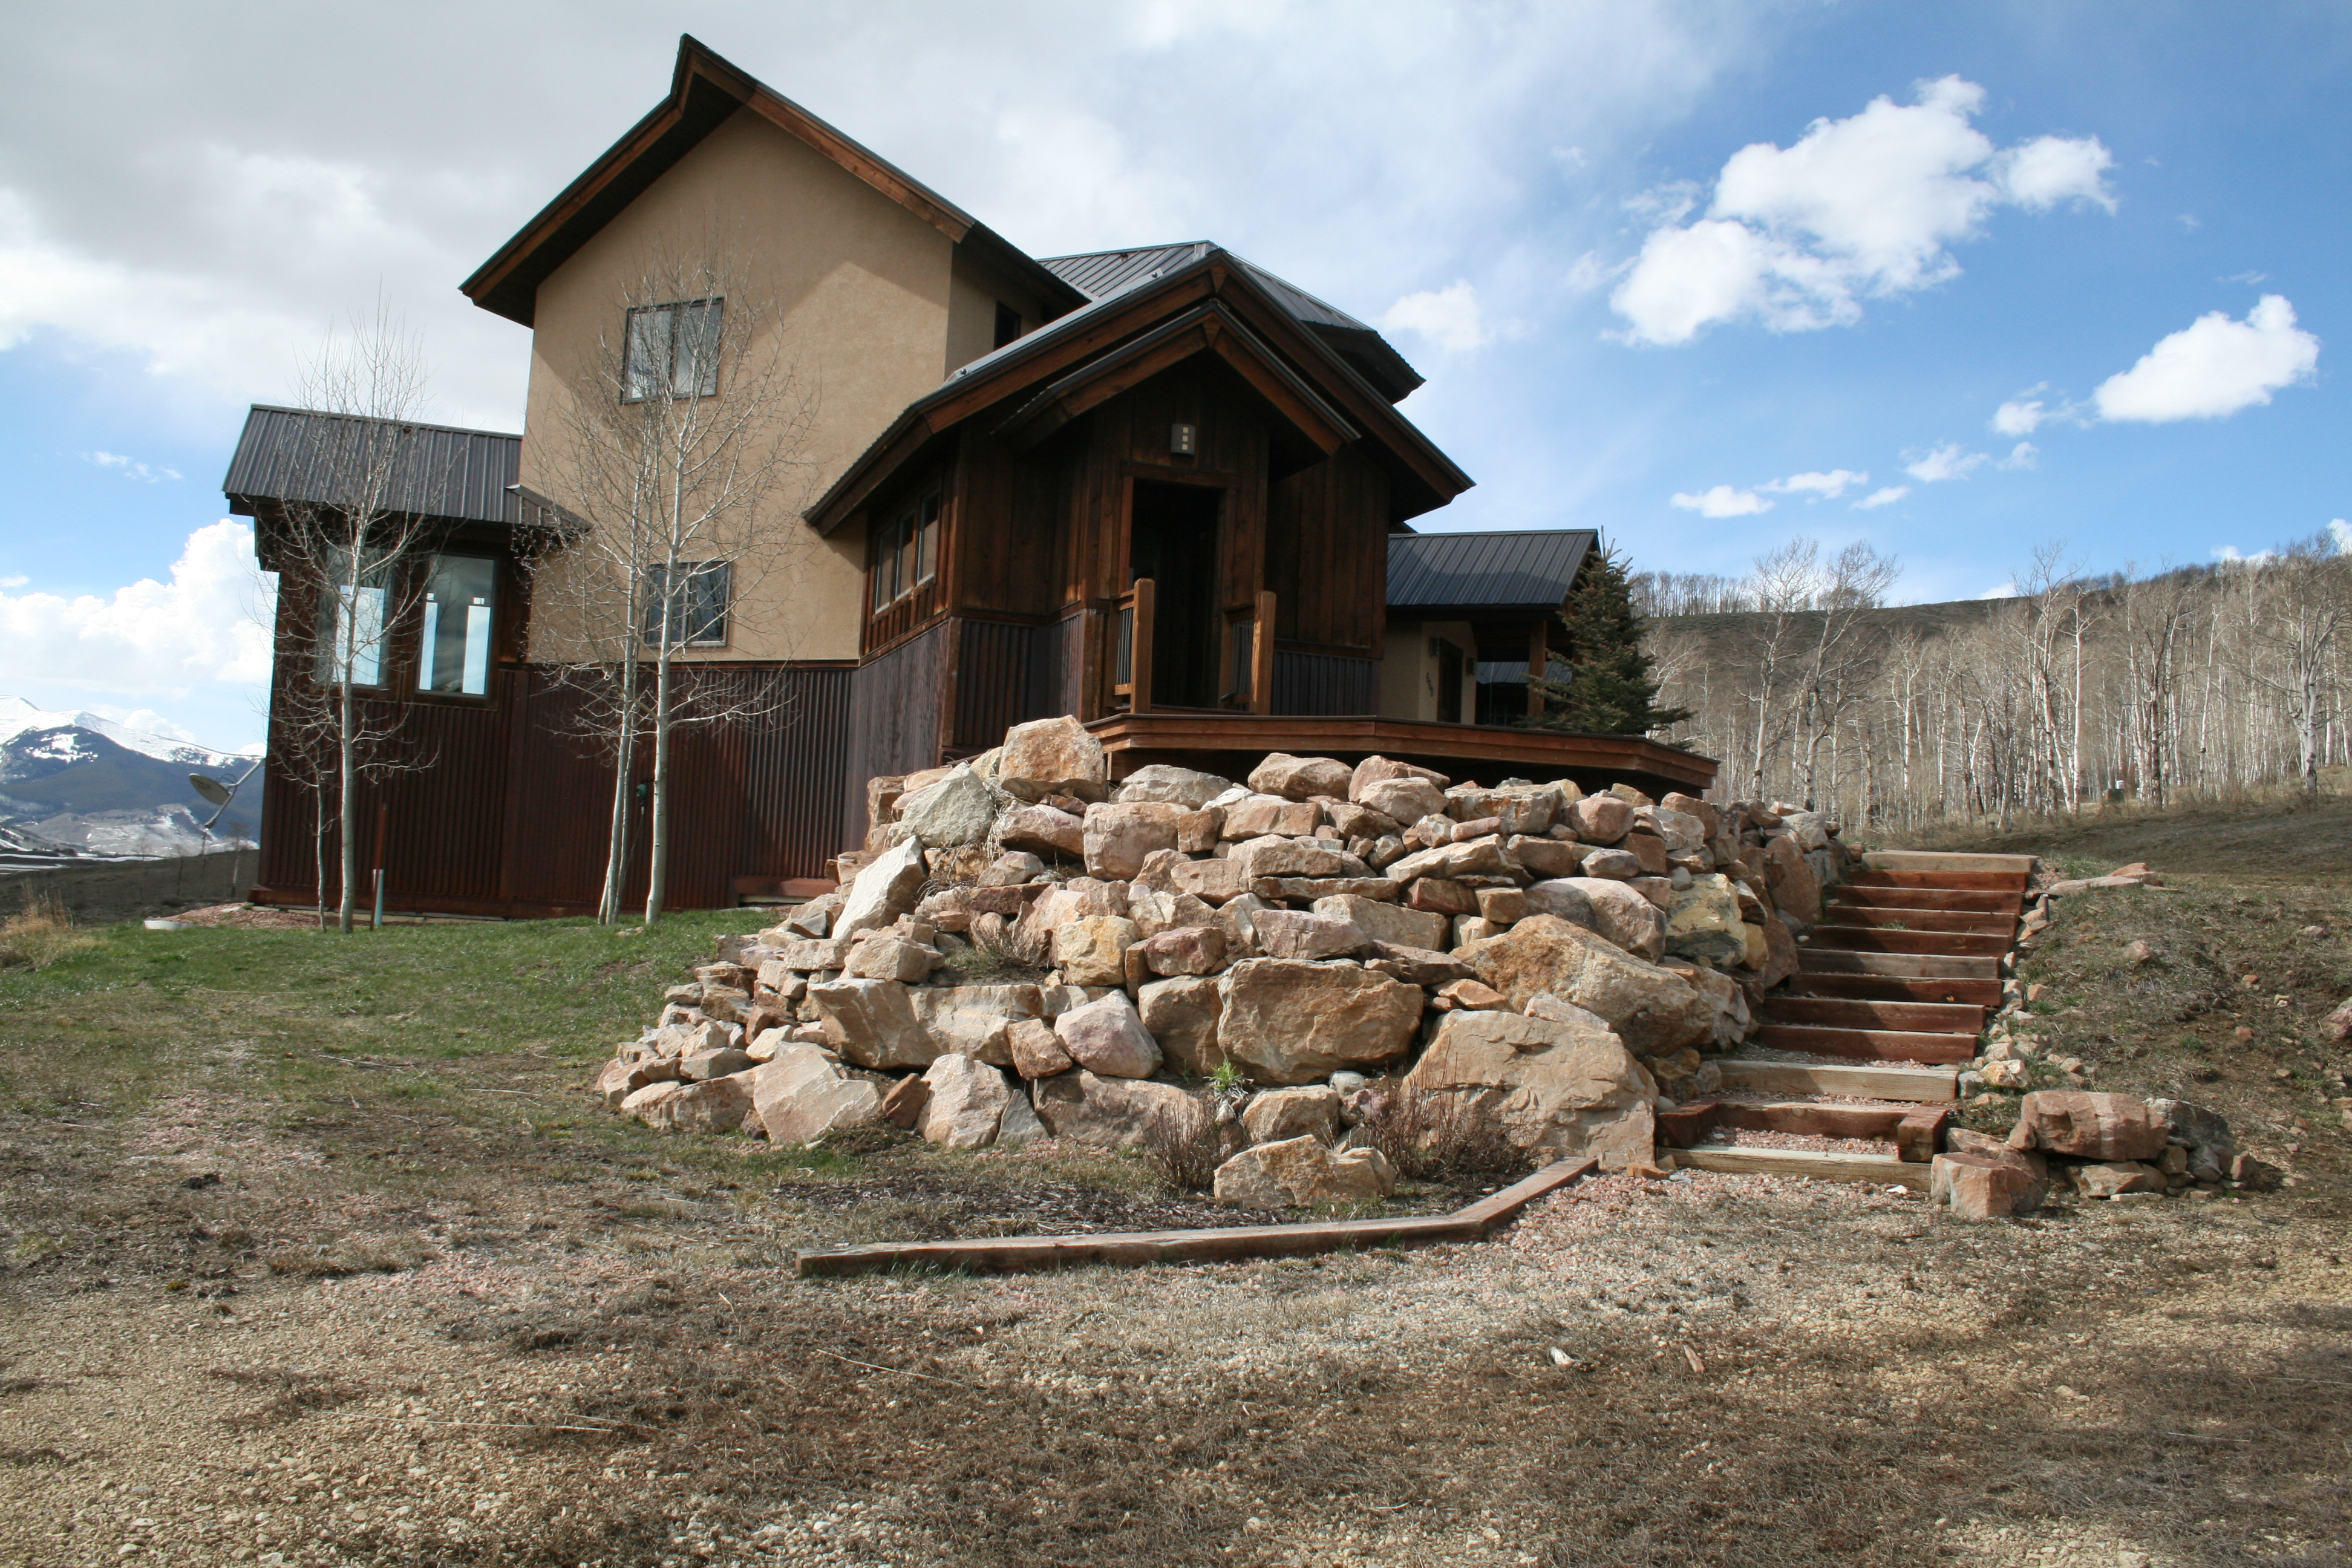 660 lower highlands house in crested butte with acreage